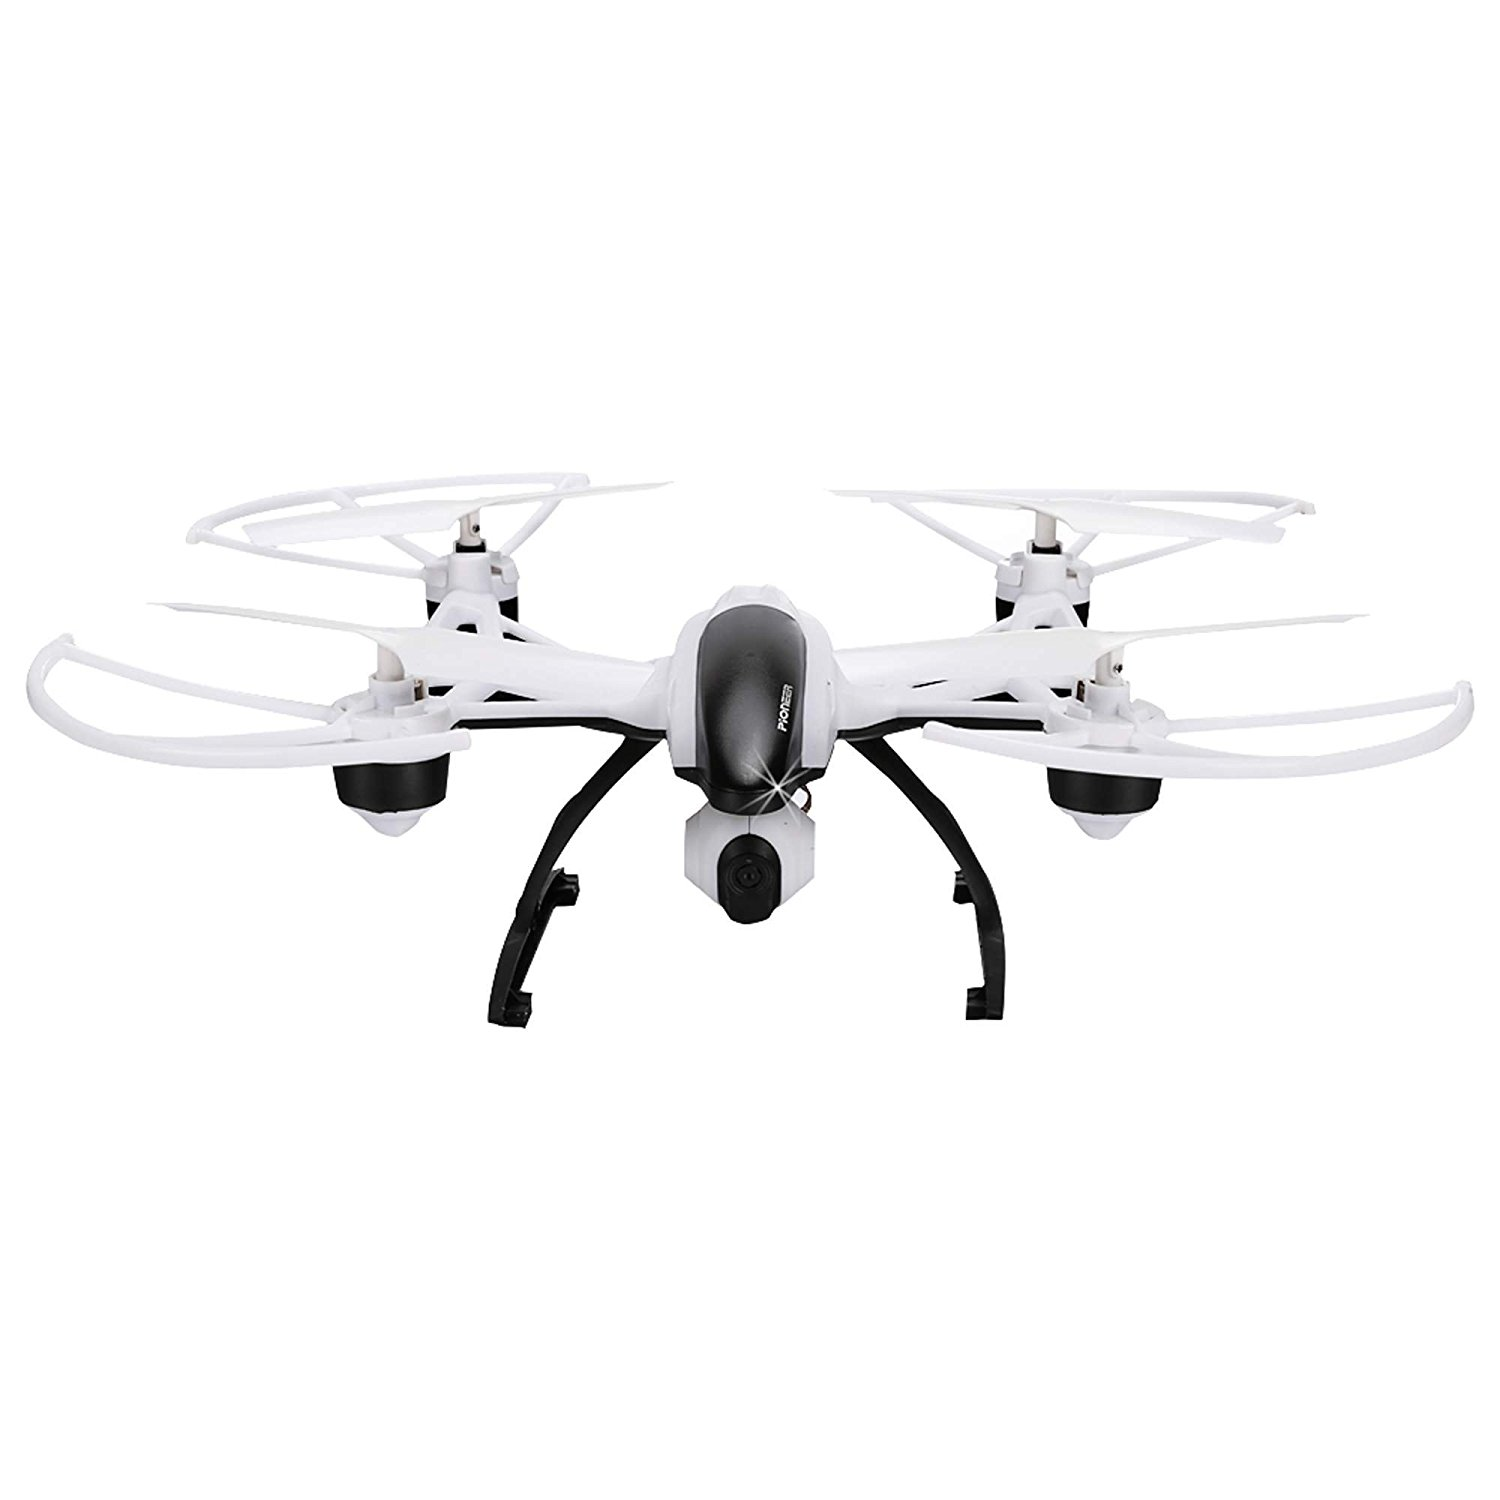 JXD 509V 2.4GHz Gyro 4 Axis RC Drone RC Quadcopter Aircraft With 3.0MP Camera by JXD